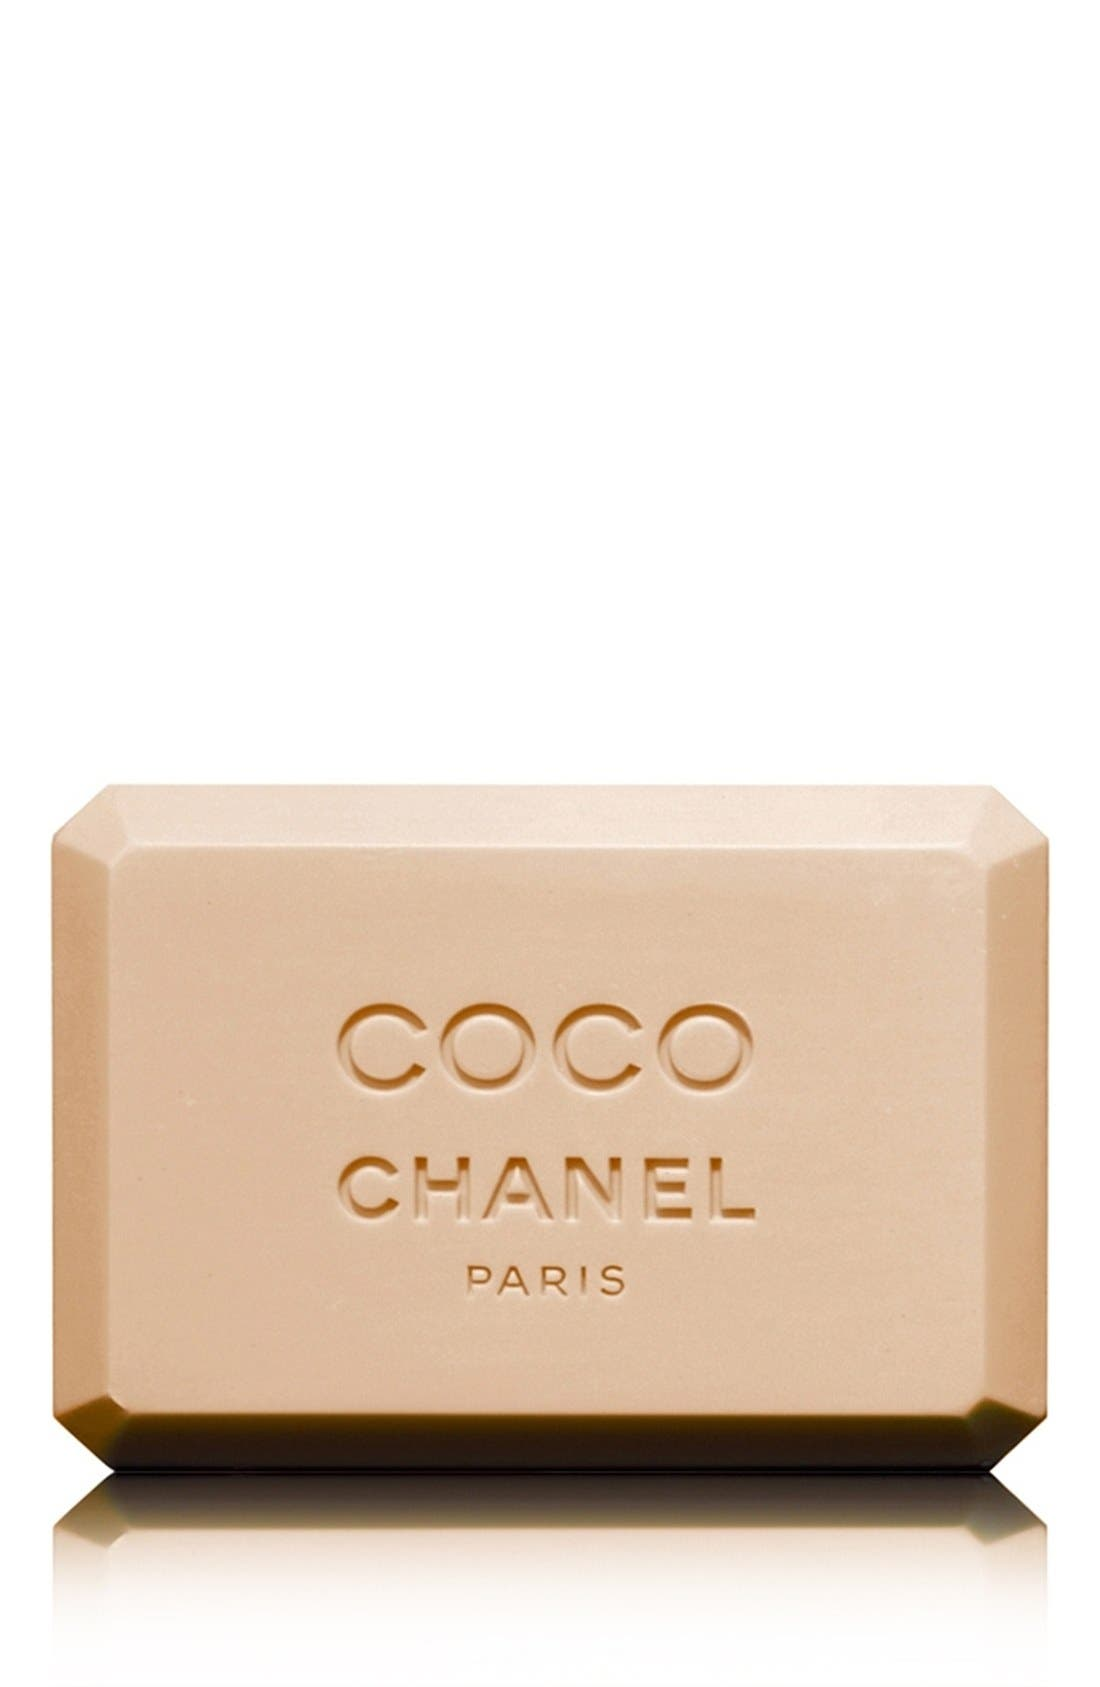 CHANEL COCO 